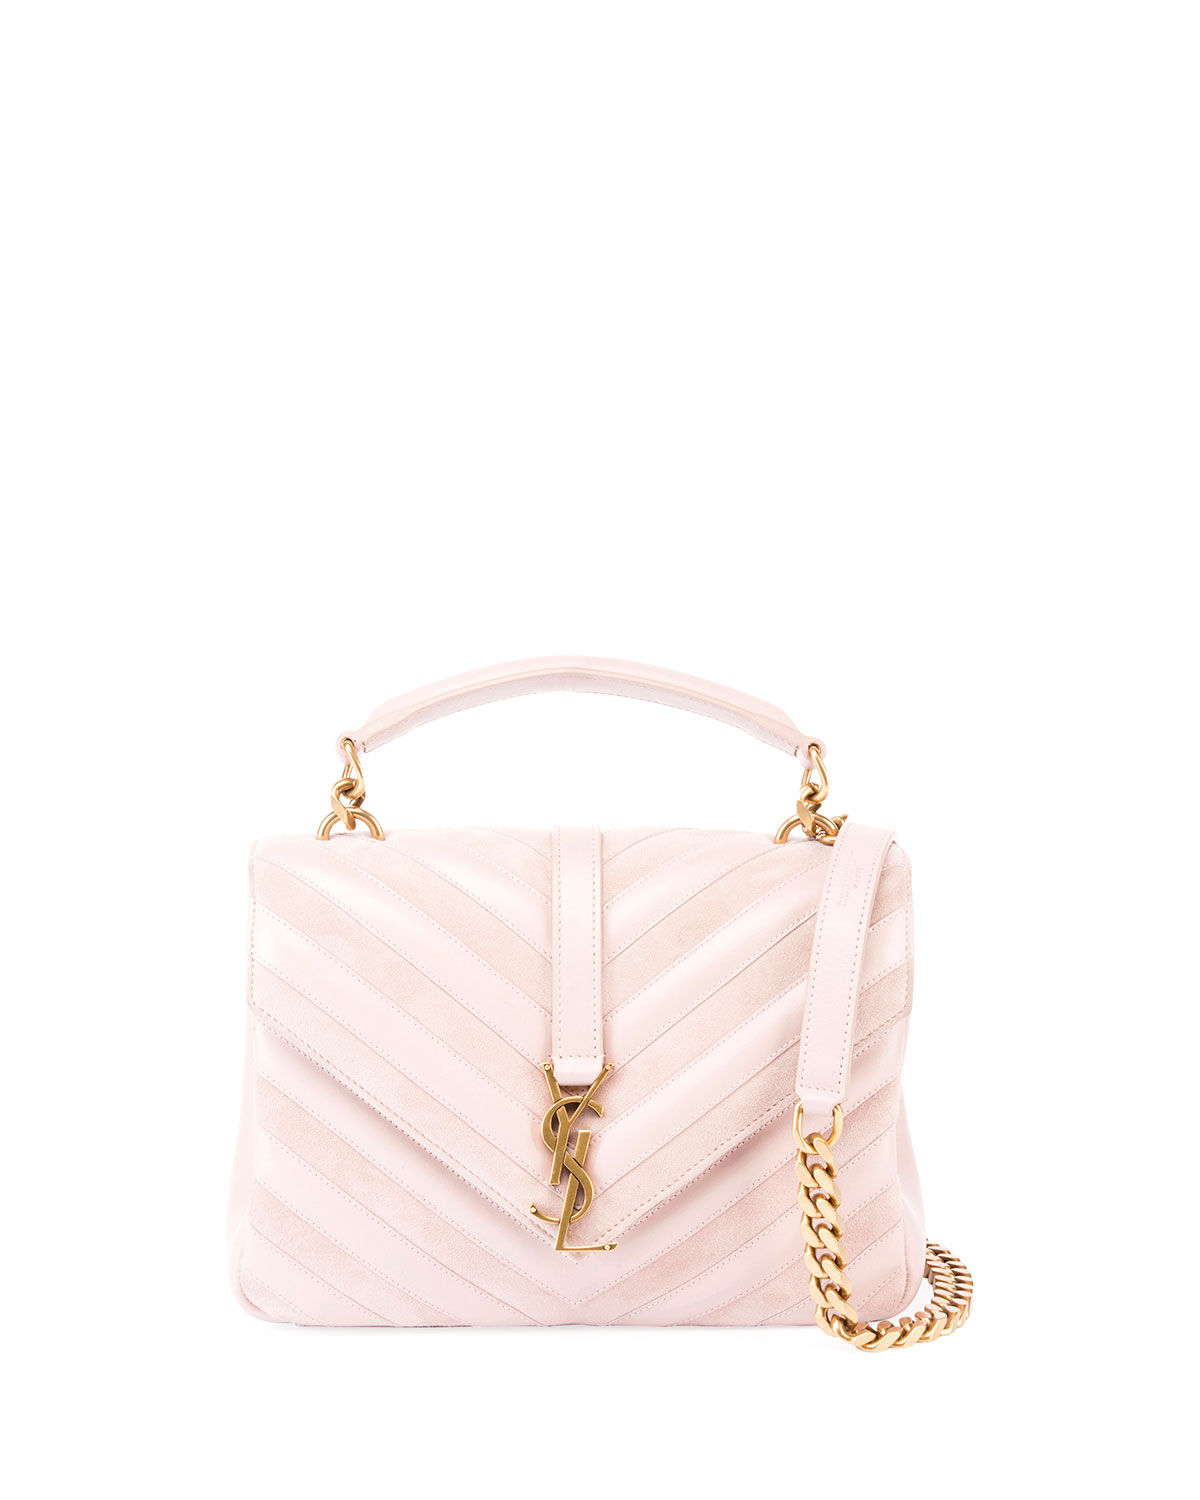 b7f8da132733 Saint Laurent Monogram College Medium Shoulder Bag